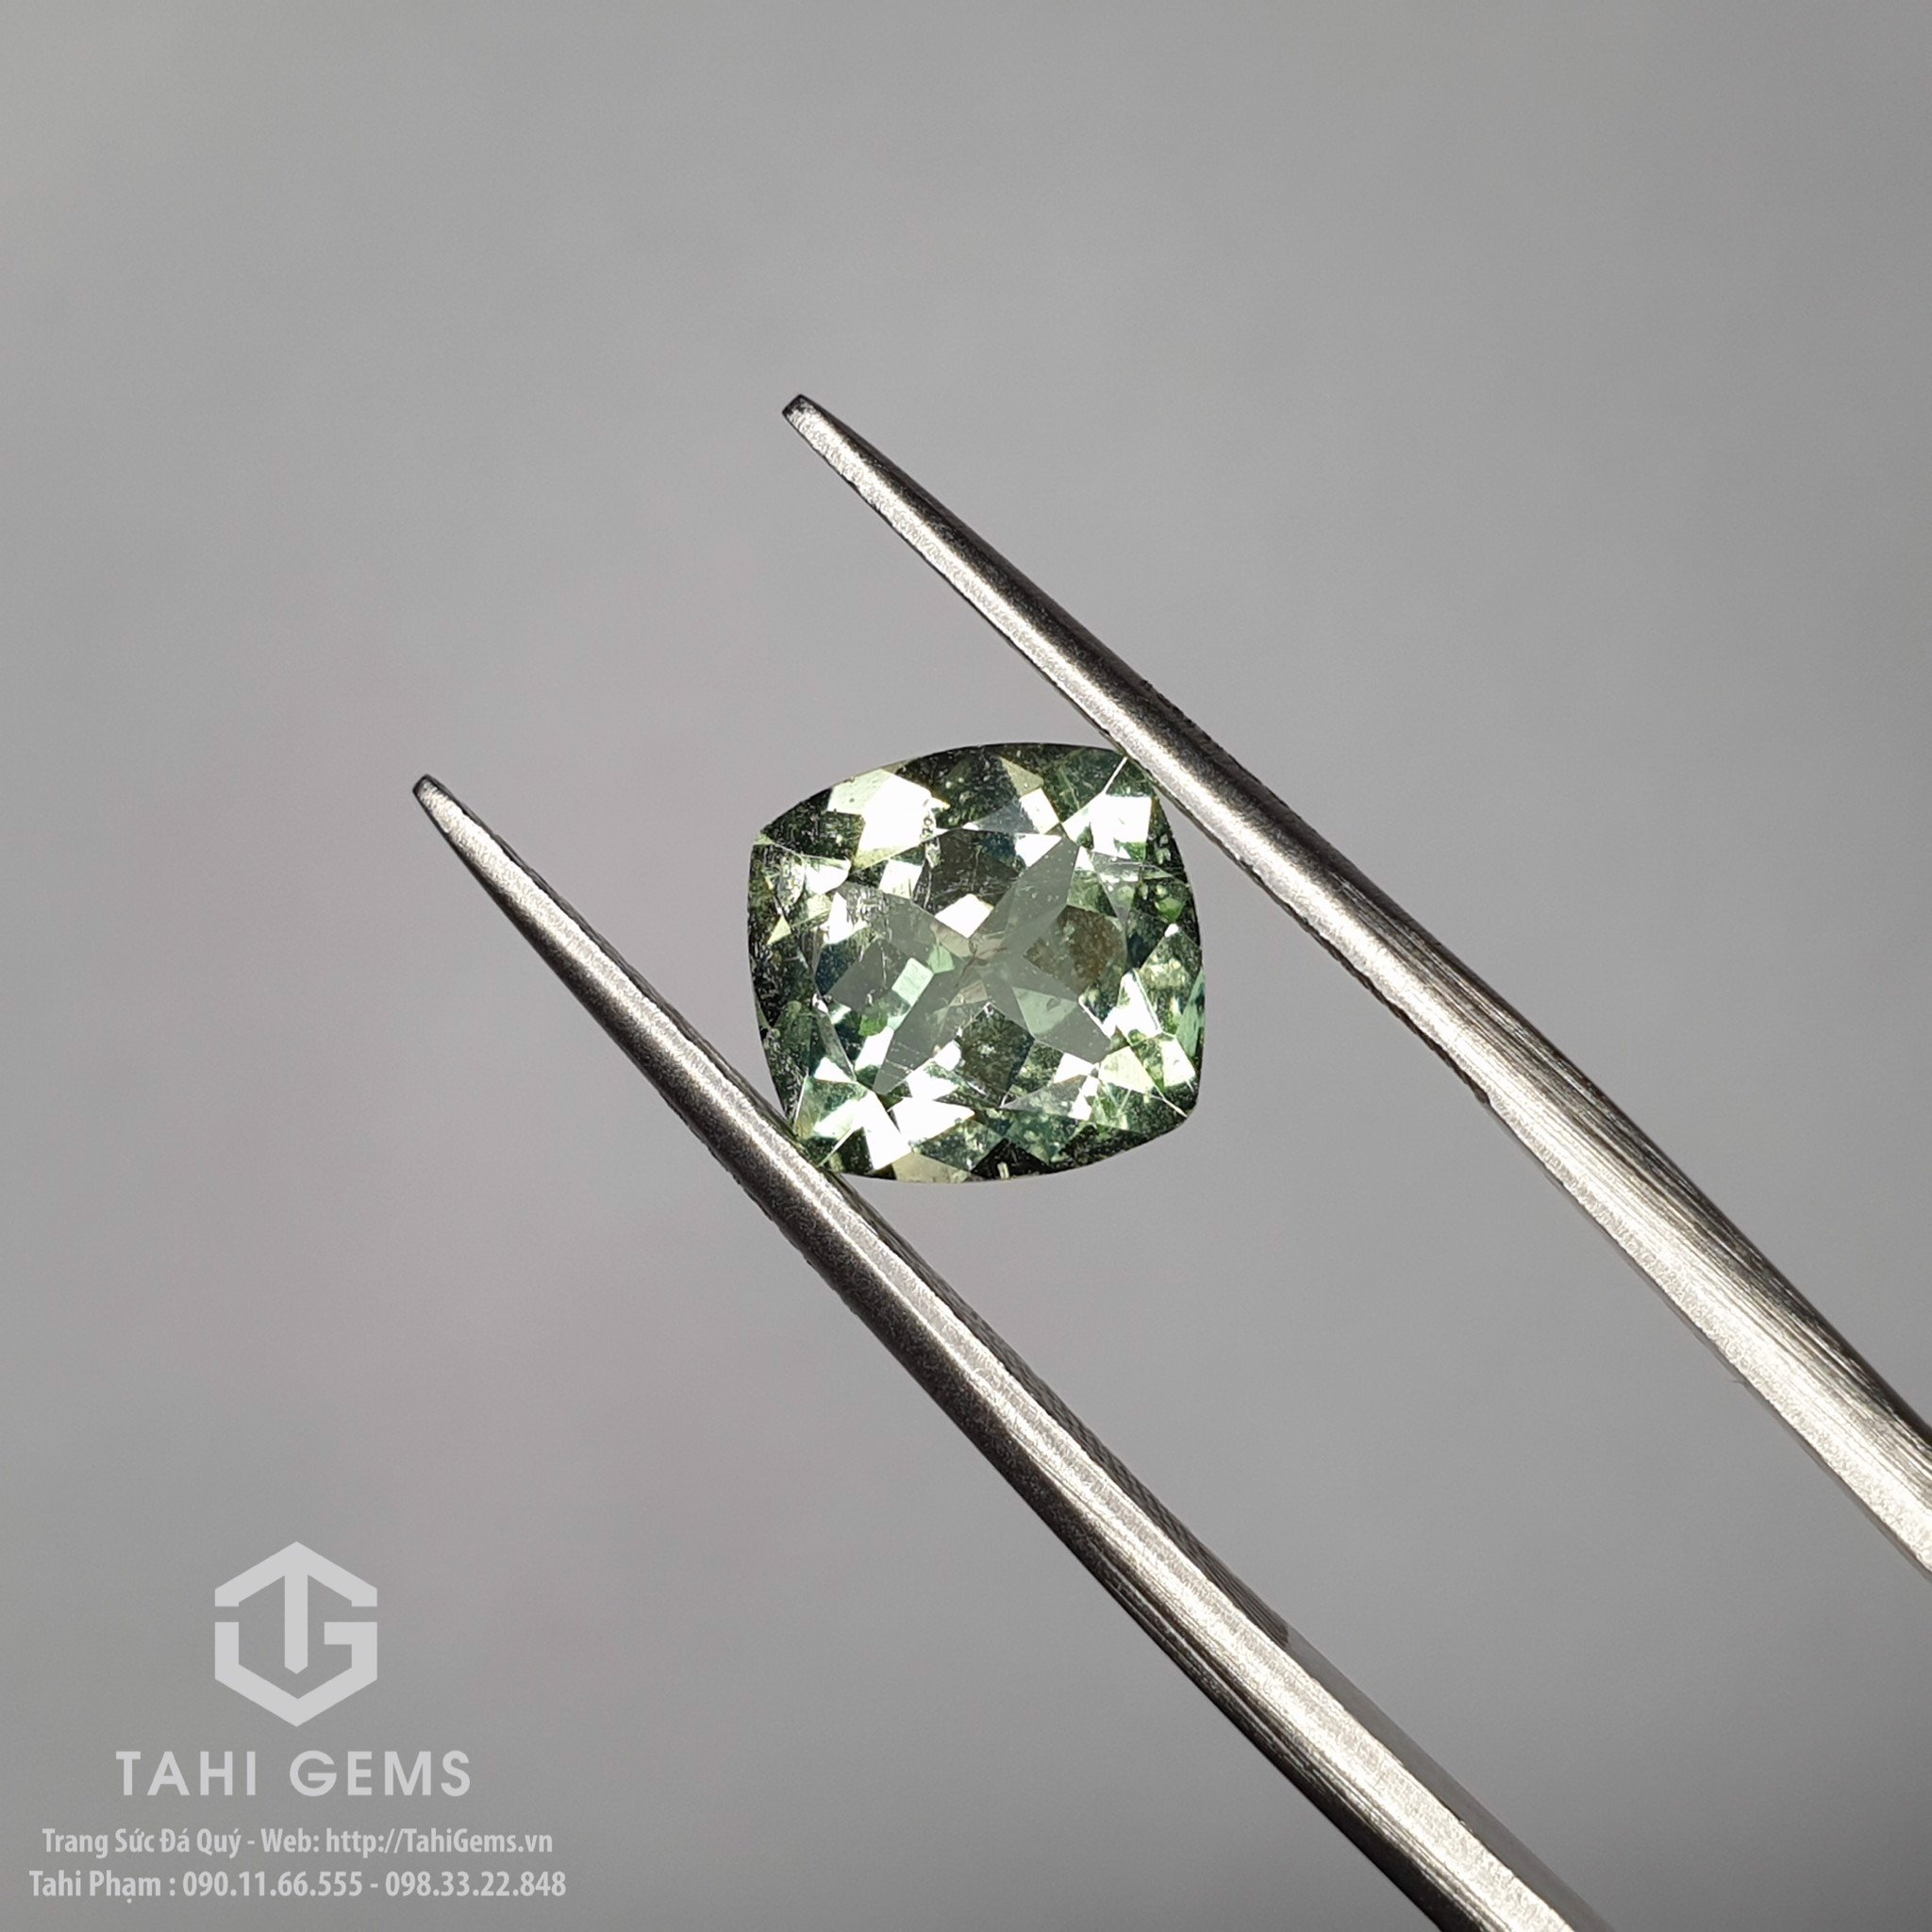 TAHI 10267 NATURAL AQUAMARINE H9 T3